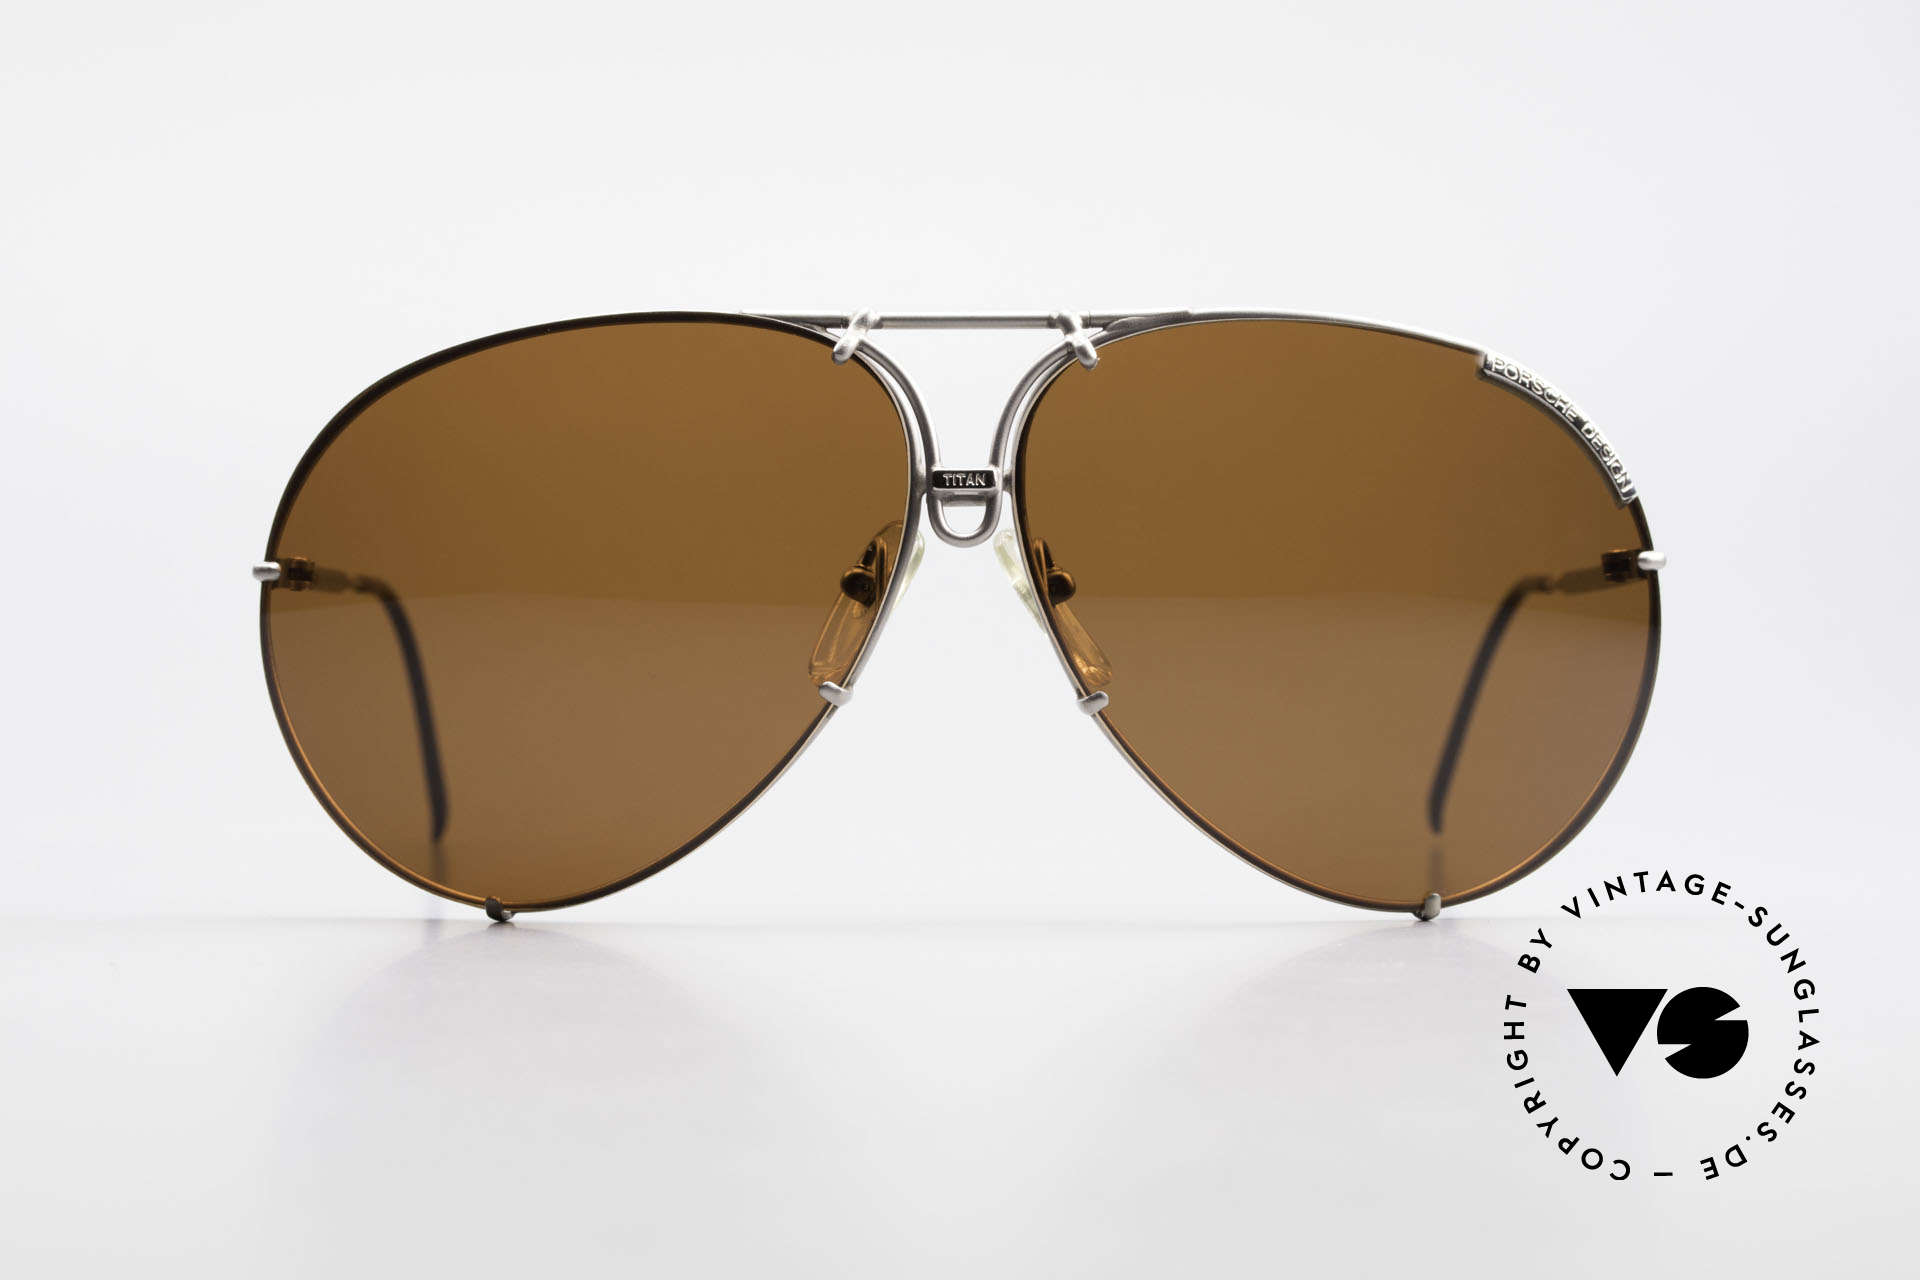 Porsche 5621 Limited Titan Edition 1980's, never worn (like all our vintage Porsche shades), Made for Men